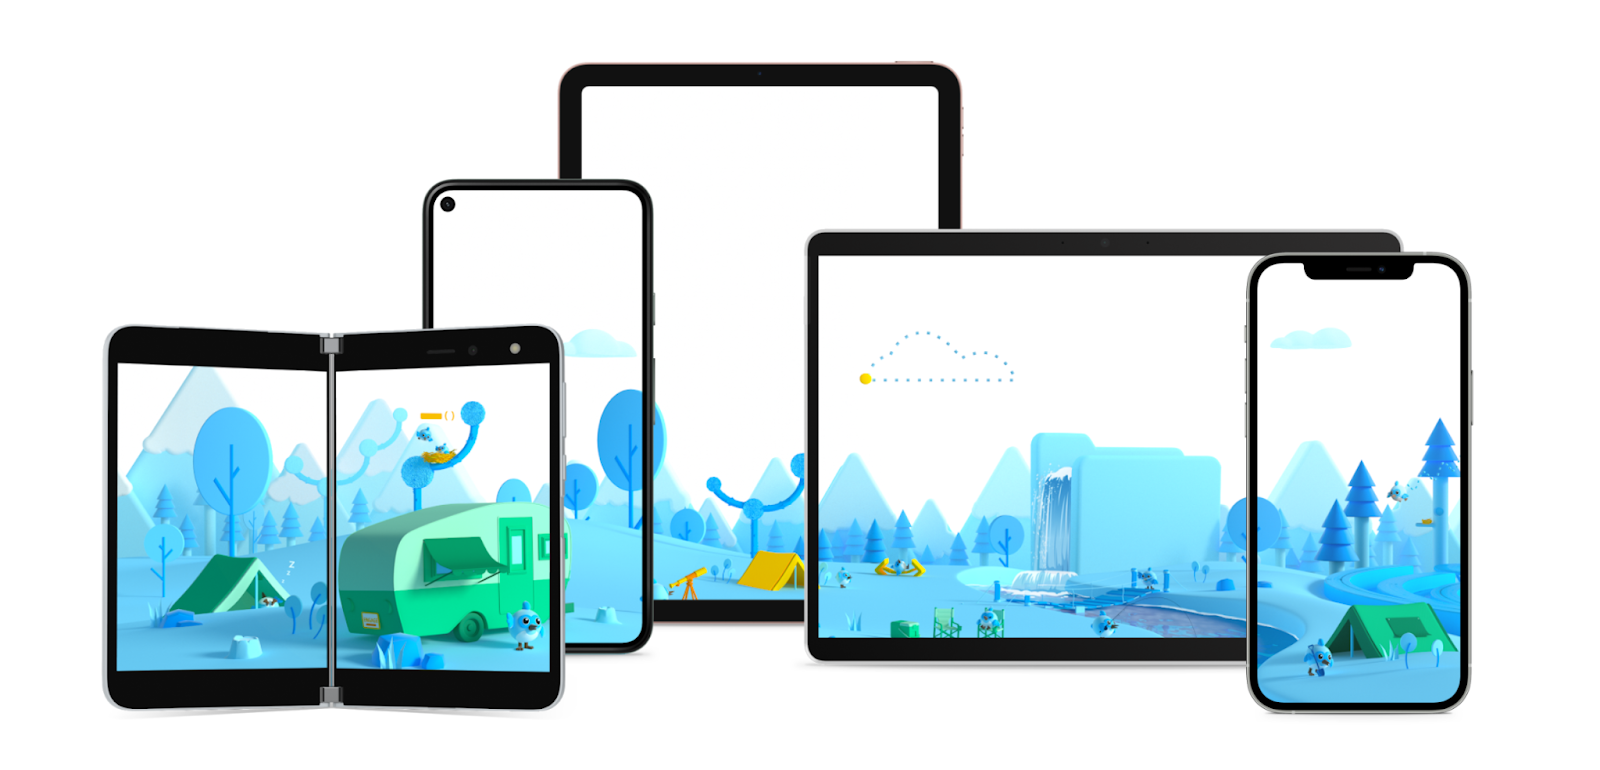 5 tablet and mobile device screens